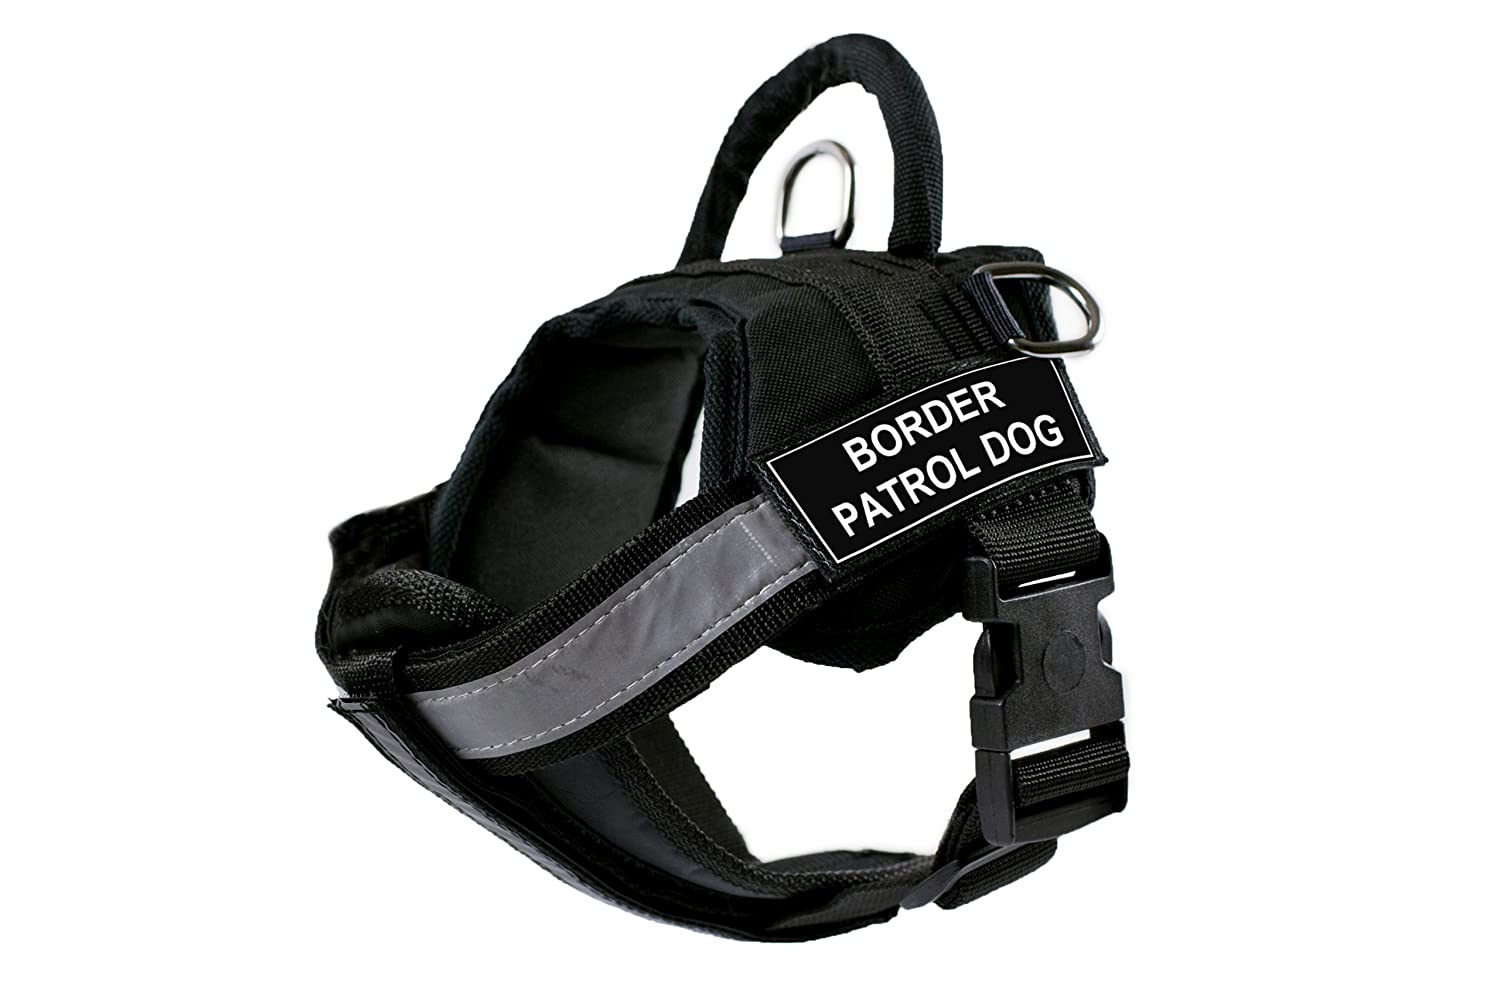 DT Works Harness with Padded Reflective Chest Straps, Border Patrol Dog, Black, Small, Fits Girth Size  25-Inch to 34-Inch